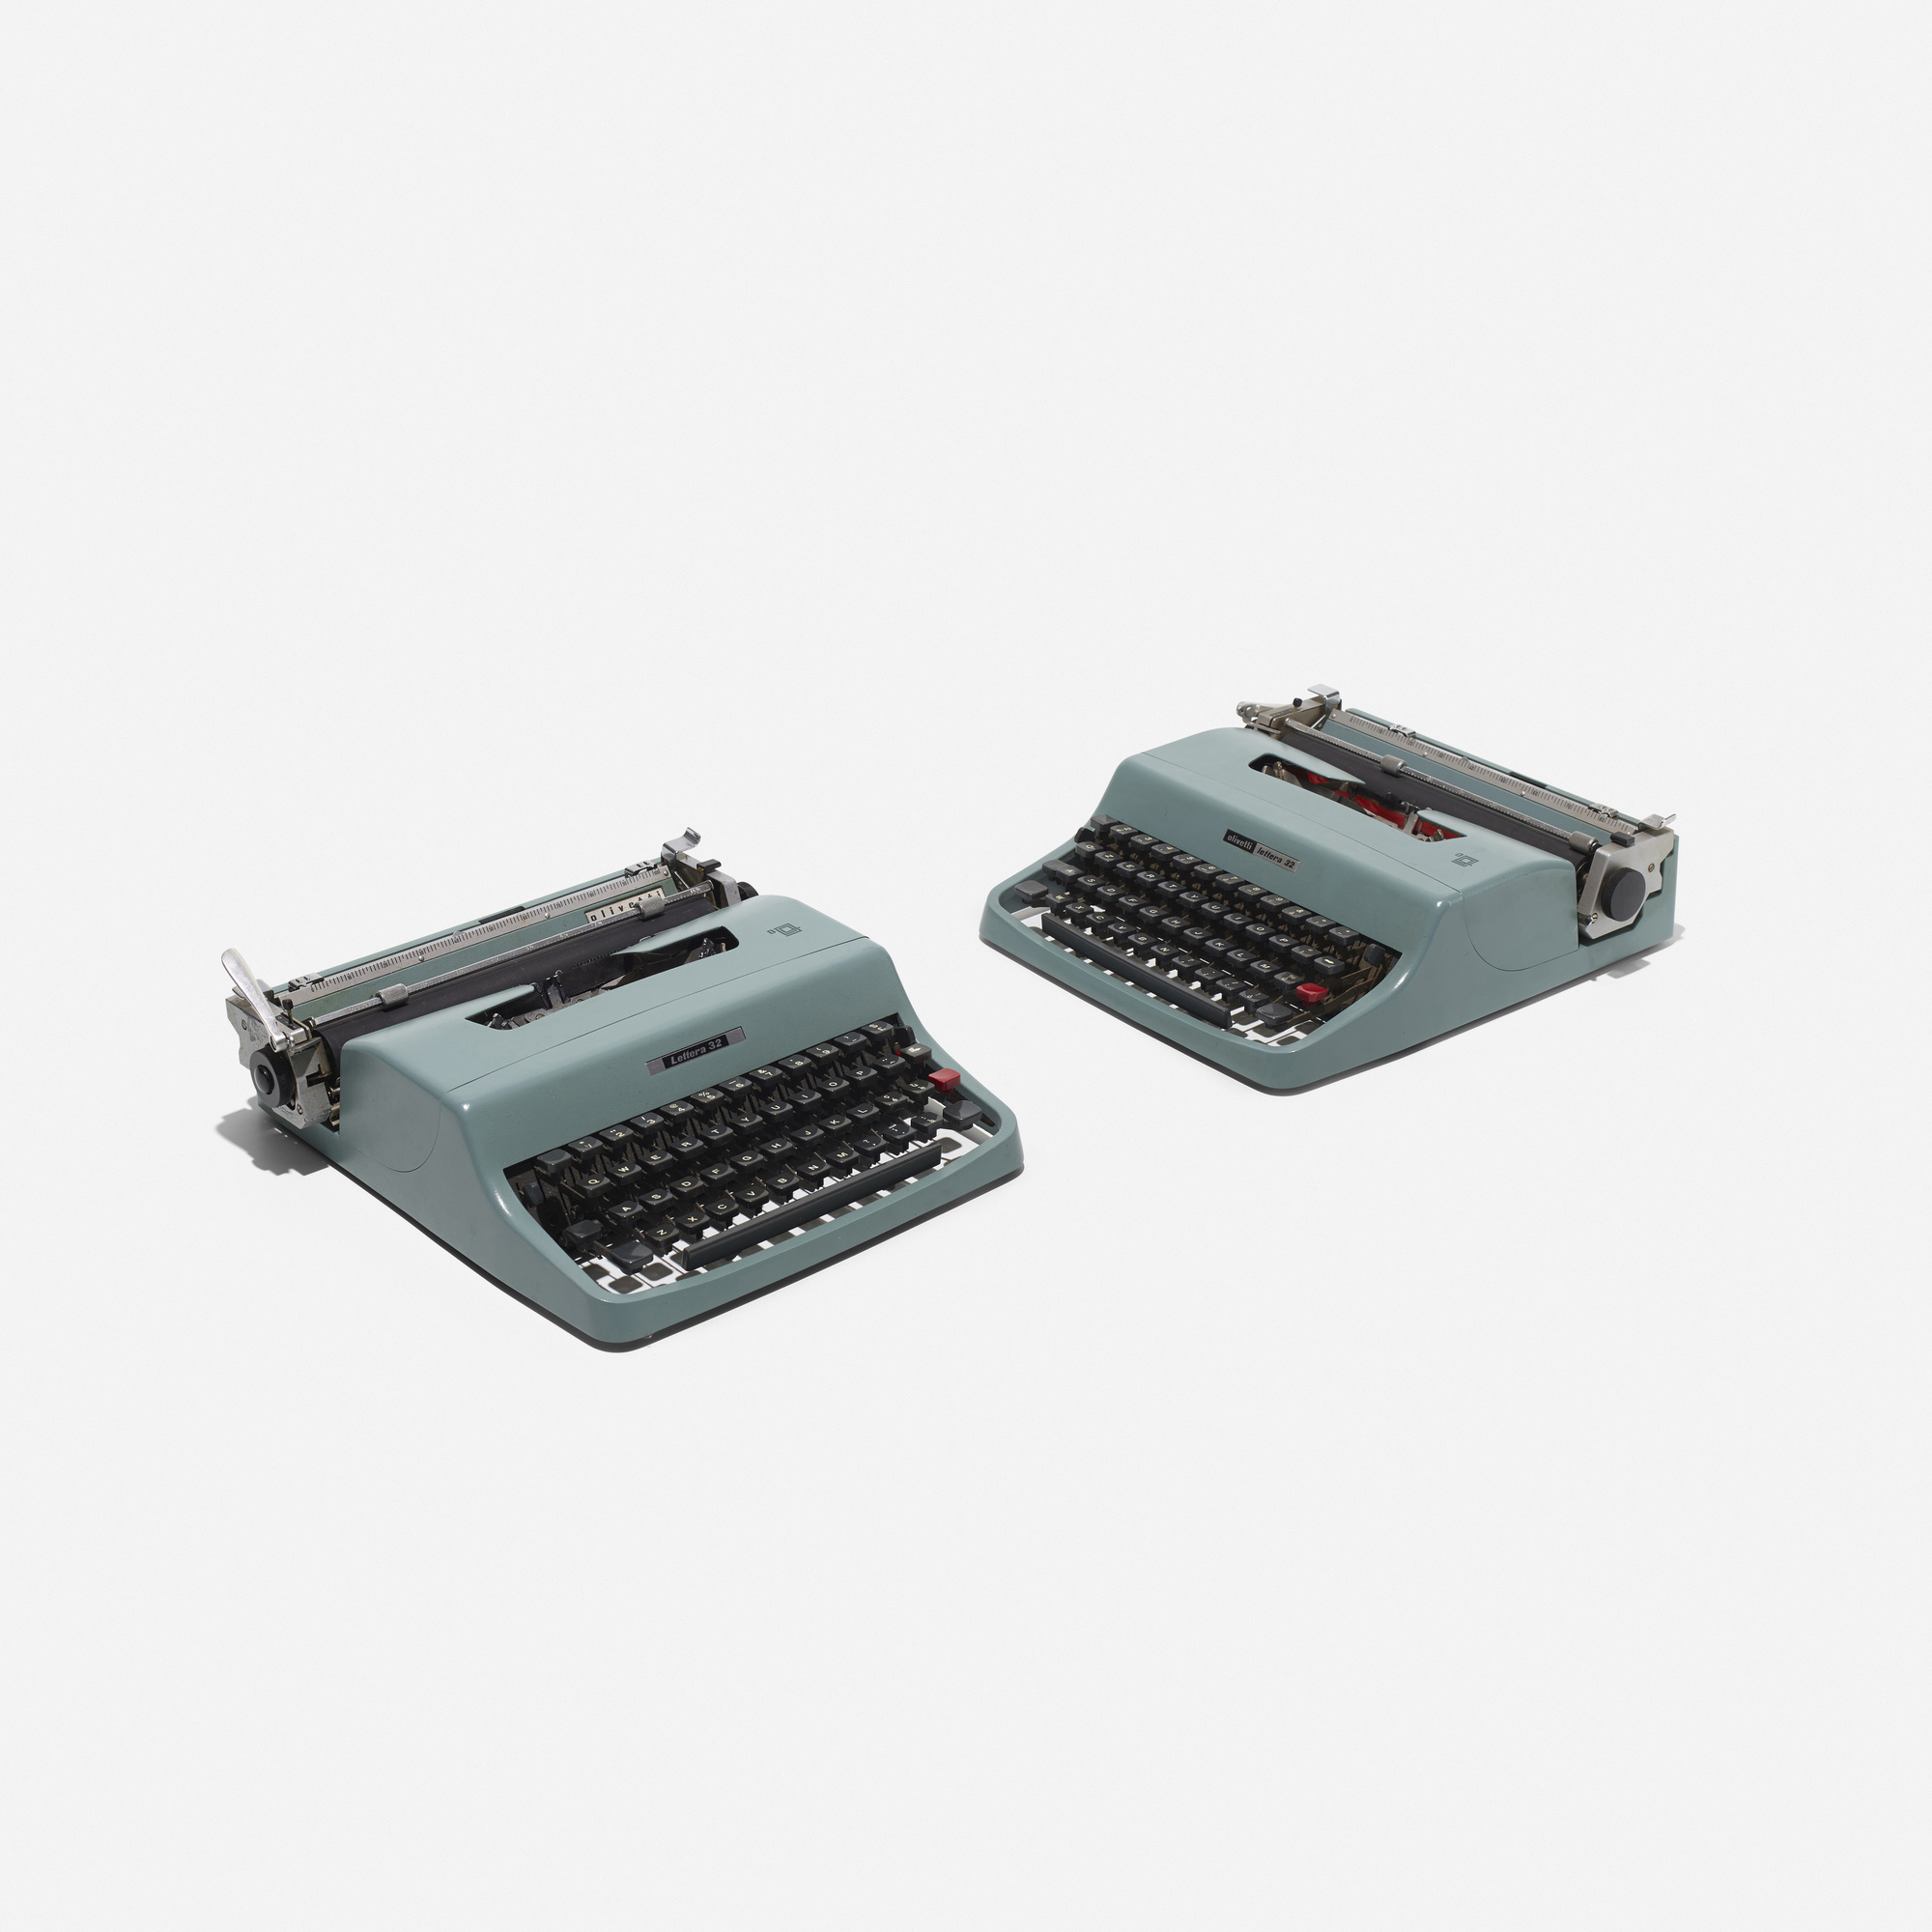 182: Marcello Nizzoli / Lettera 32 typewriters, pair (2 of 2)